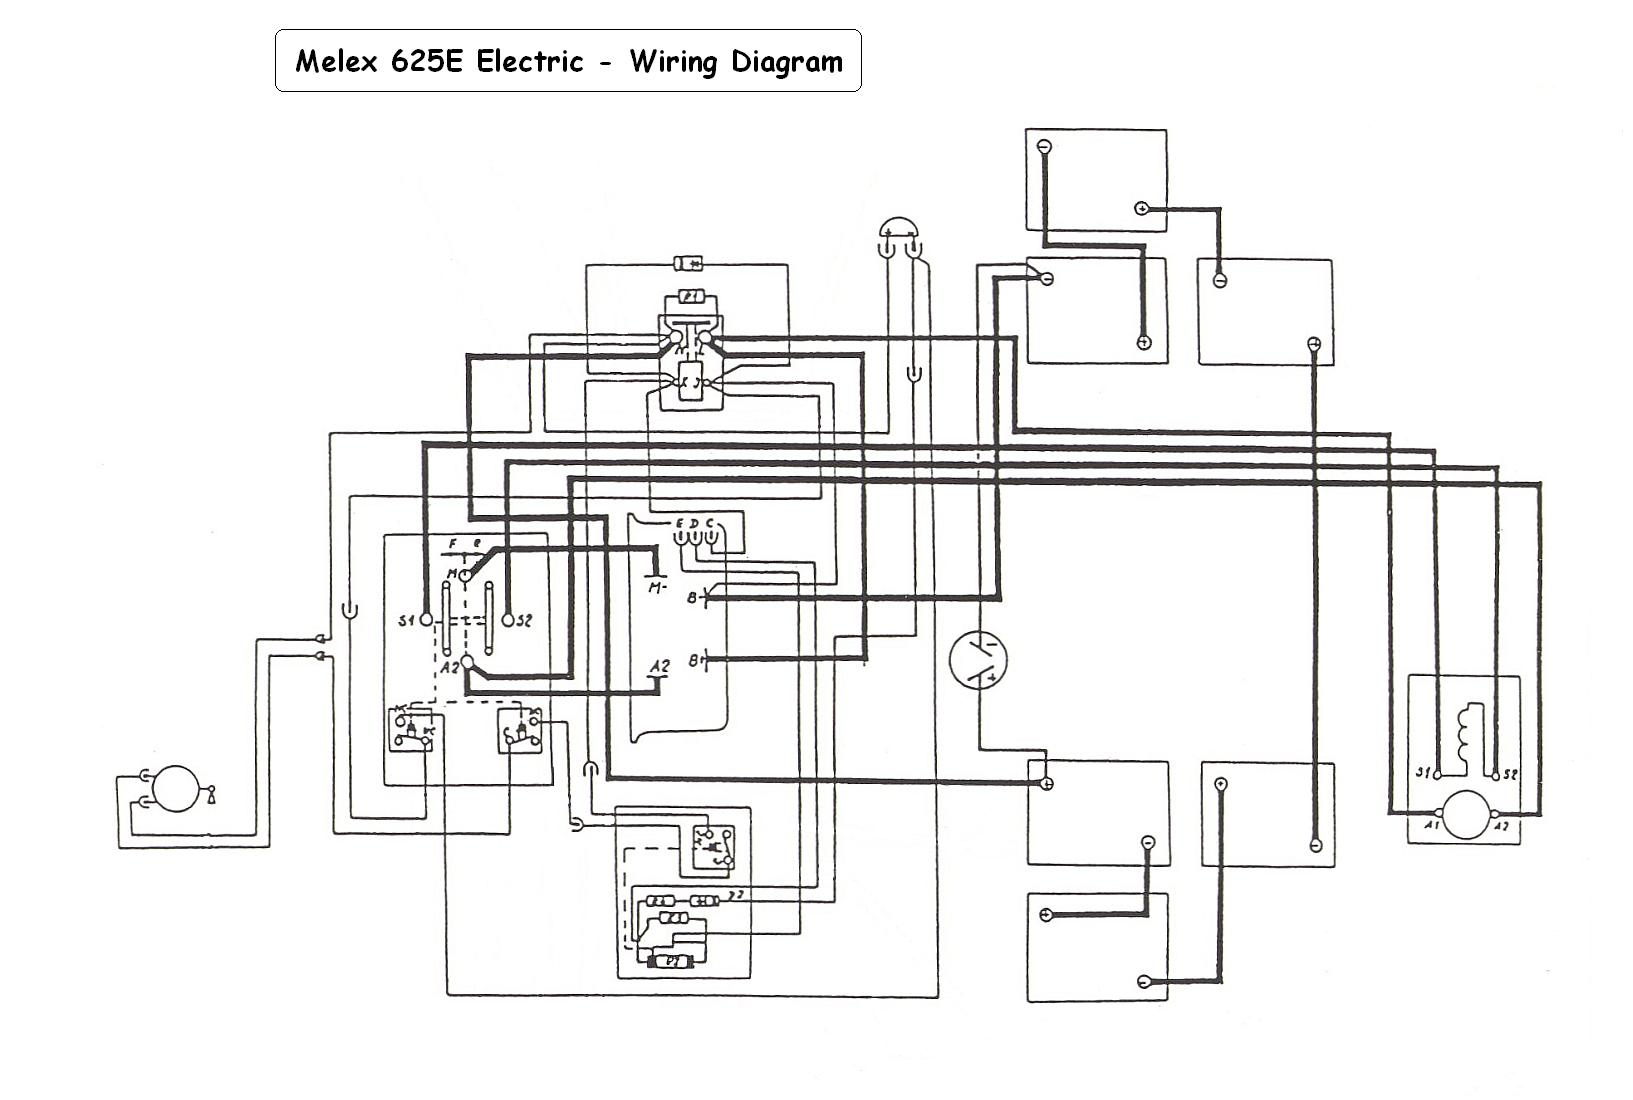 Zone Electric Golf Cart Wiring Diagram 38 Images Yamaha 48 Volt Melex625e Looking For A Club Car To